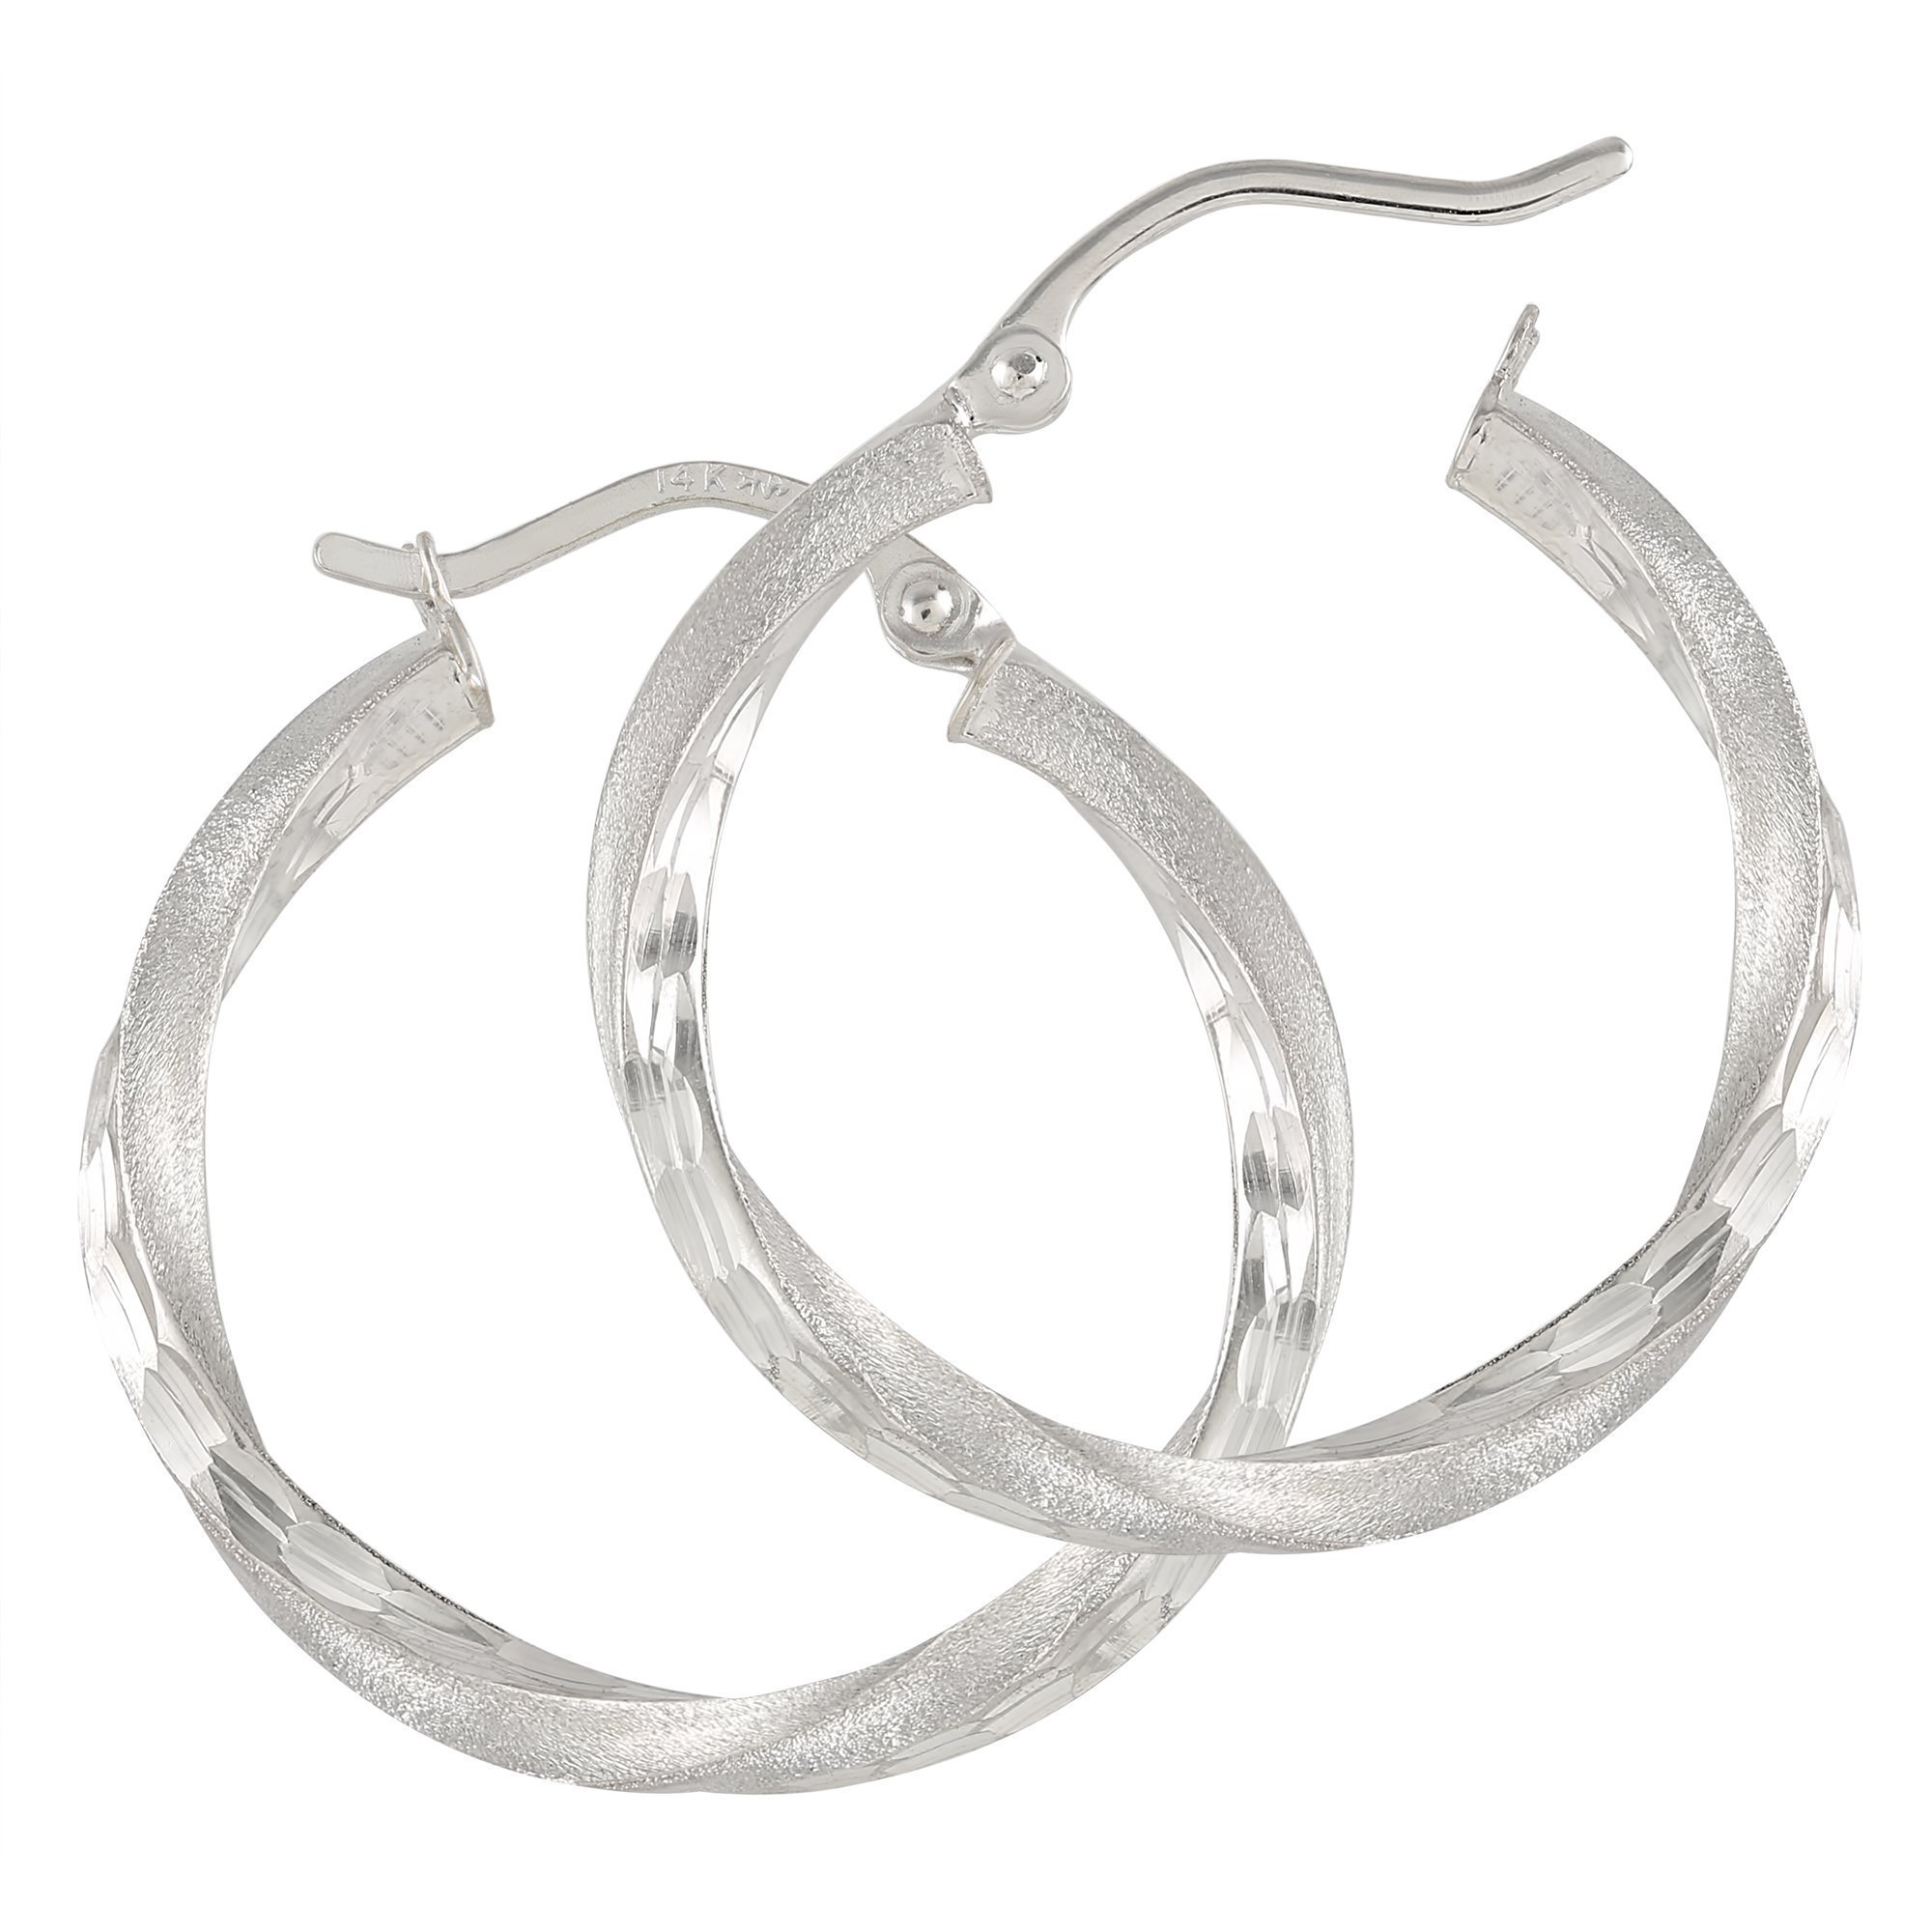 Balluccitoosi Satin Finish Hoop Earrings - 14k White Gold Earring for Women and Girls - Unique Jewelry for Everyday